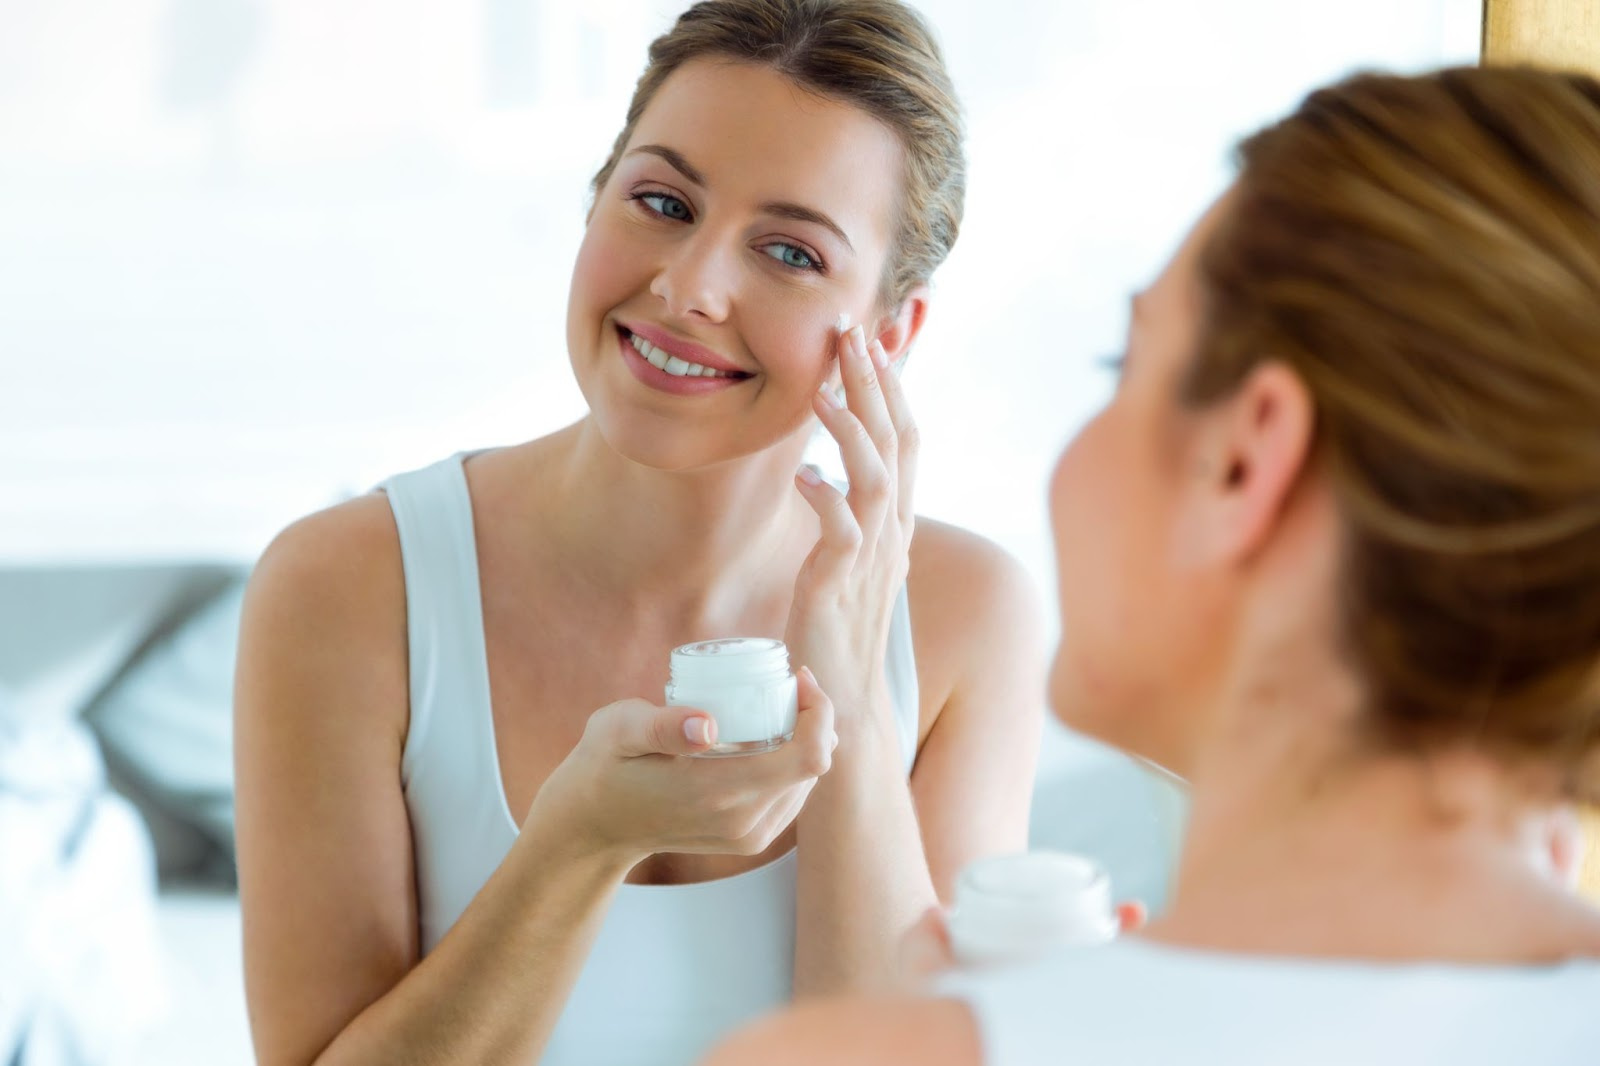 A woman applying a skincare product with active ingredients on her skin